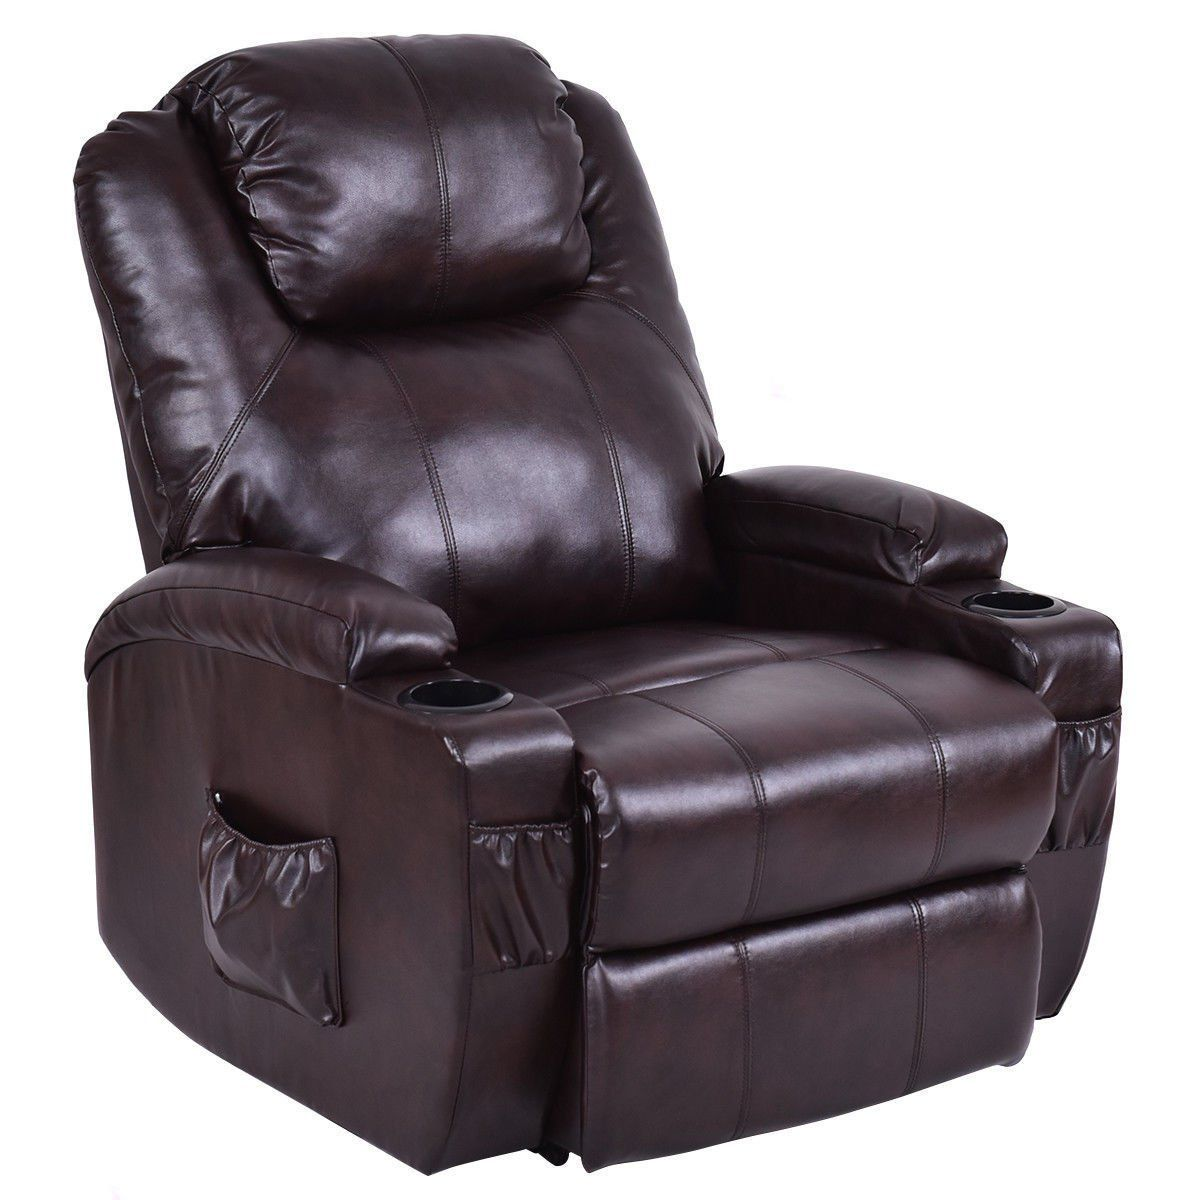 Recliner Sofa Electric Power Lift Chair With Remote Cup Holder Pu